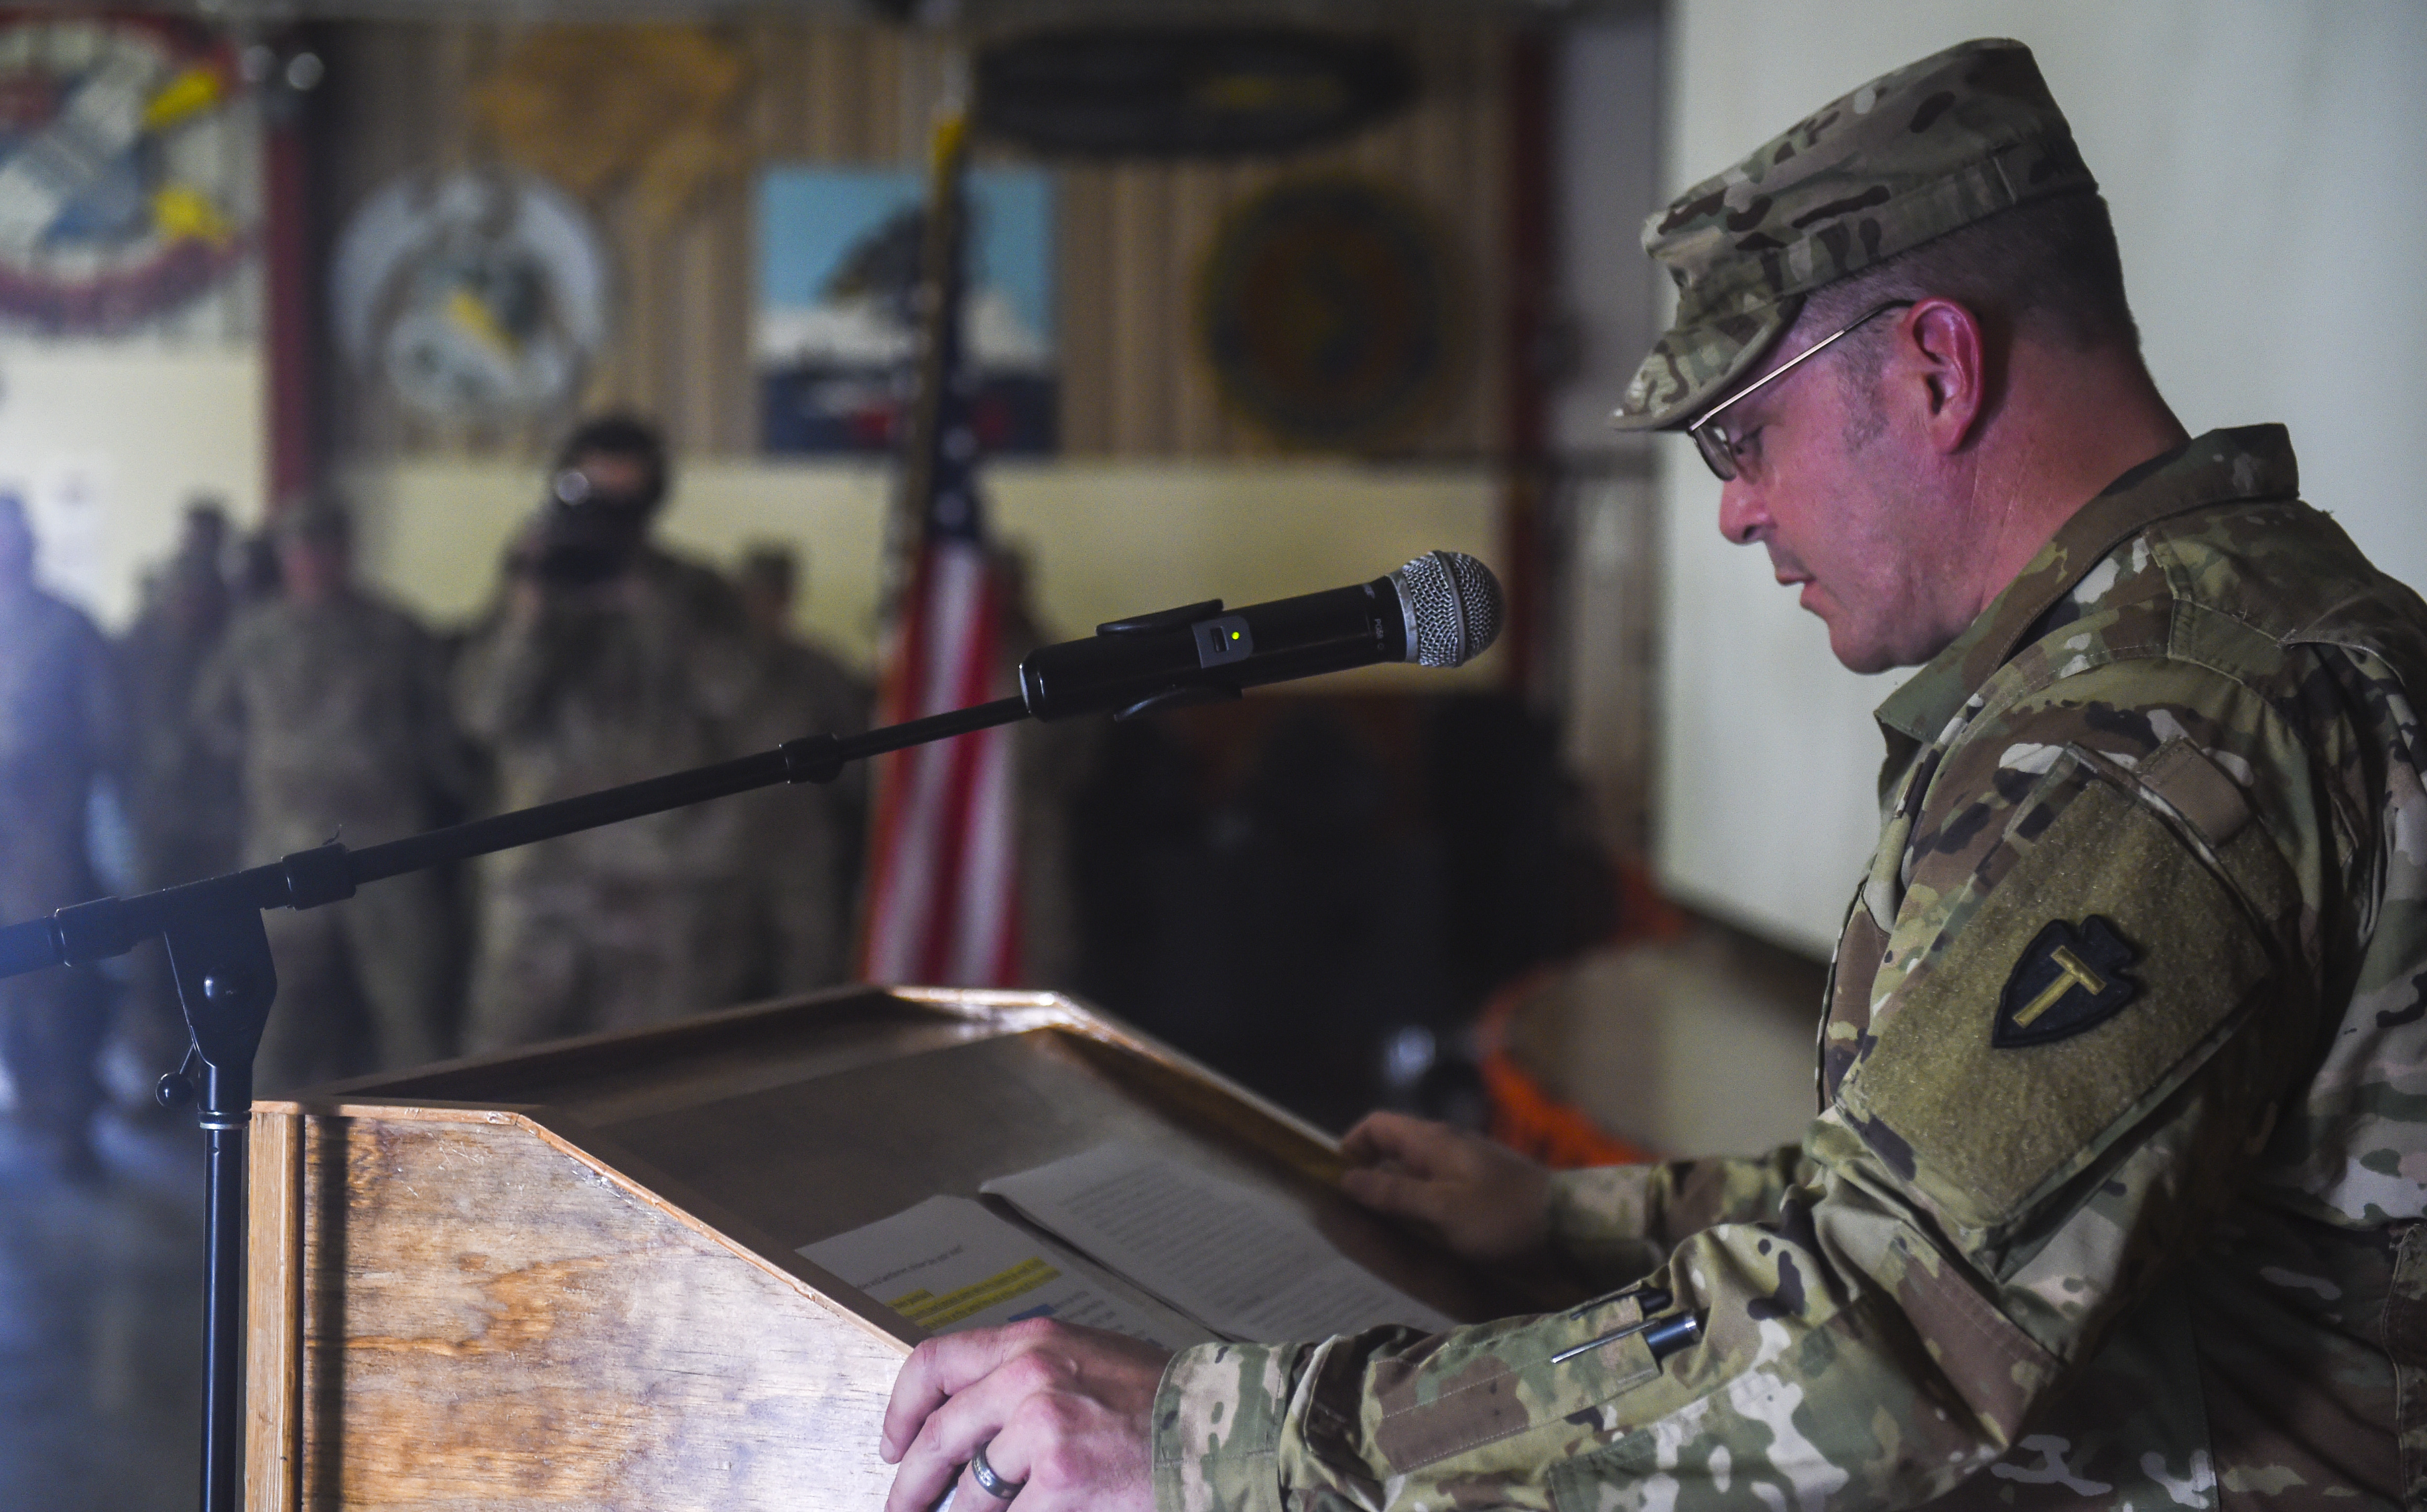 U.S. Army Lt. Col. Ross Walker, 3rd Battalion, 144th Infantry Regiment battalion commander, delivers his remarks during a transfer of authority ceremony at Camp Lemonnier, Djibouti, Nov. 1, 2017. During the ceremony, the 3-144th IN assumed responsibility of the security force mission previously being conducted by the 1st Battalion, 153rd Infantry Regiment. The 3-144th IN will be responsible for security force assistance and force protection for U.S. interests and partner nations in the Combined Joint Task Force – Horn of Africa's area of responsibility. (U.S. Air Force photo by Staff Sgt. Timothy Moore)